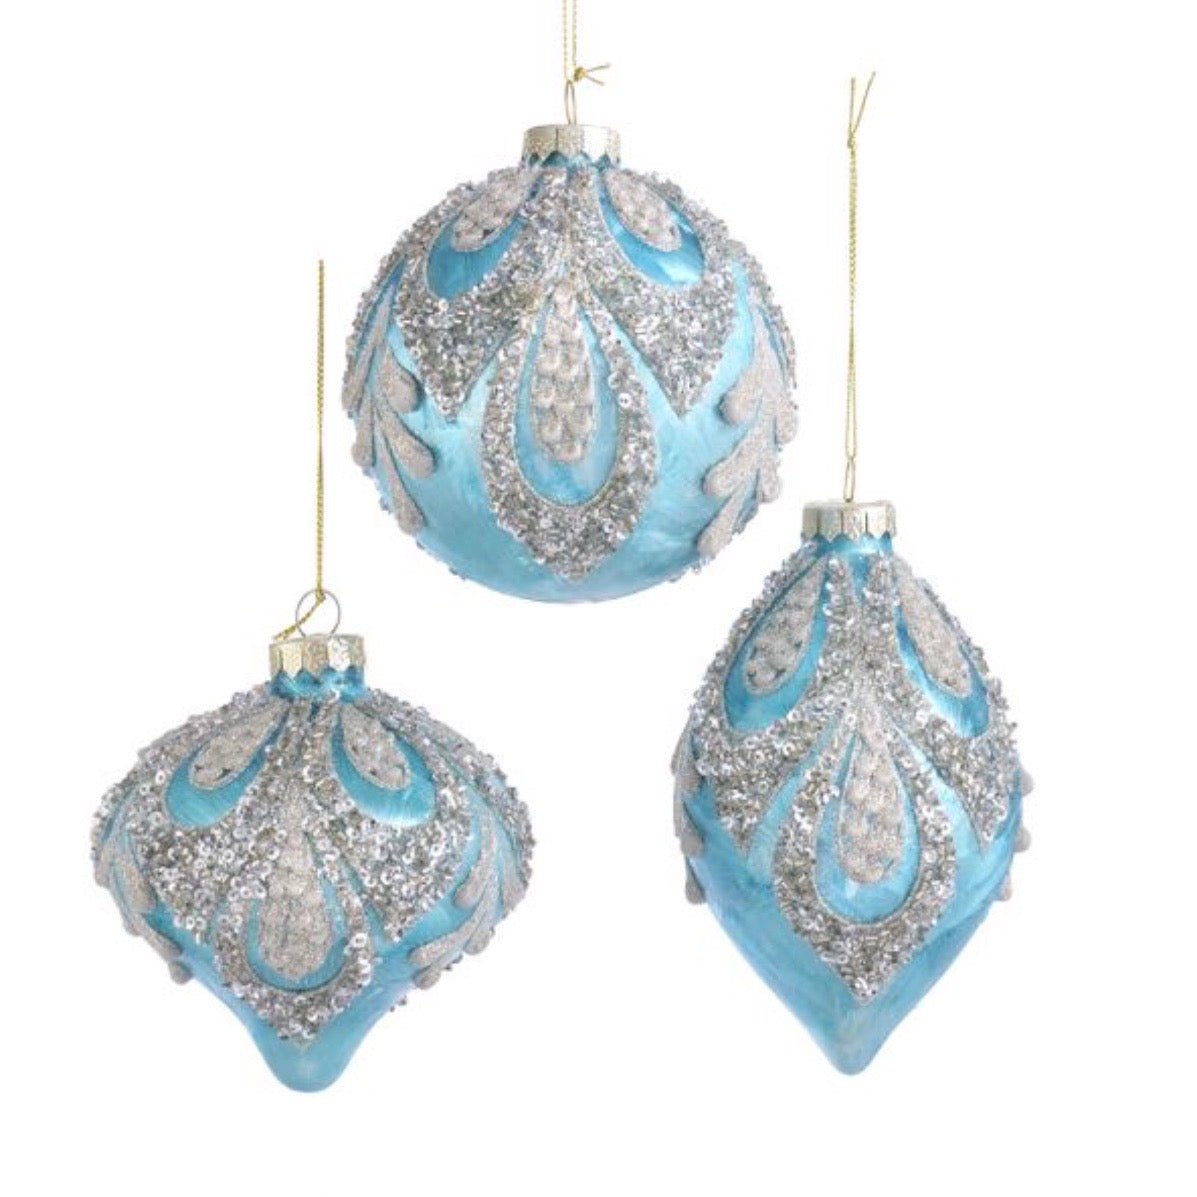 Light Blue Glass Christmas Ornaments Cheaper Than Retail Price Buy Clothing Accessories And Lifestyle Products For Women Men